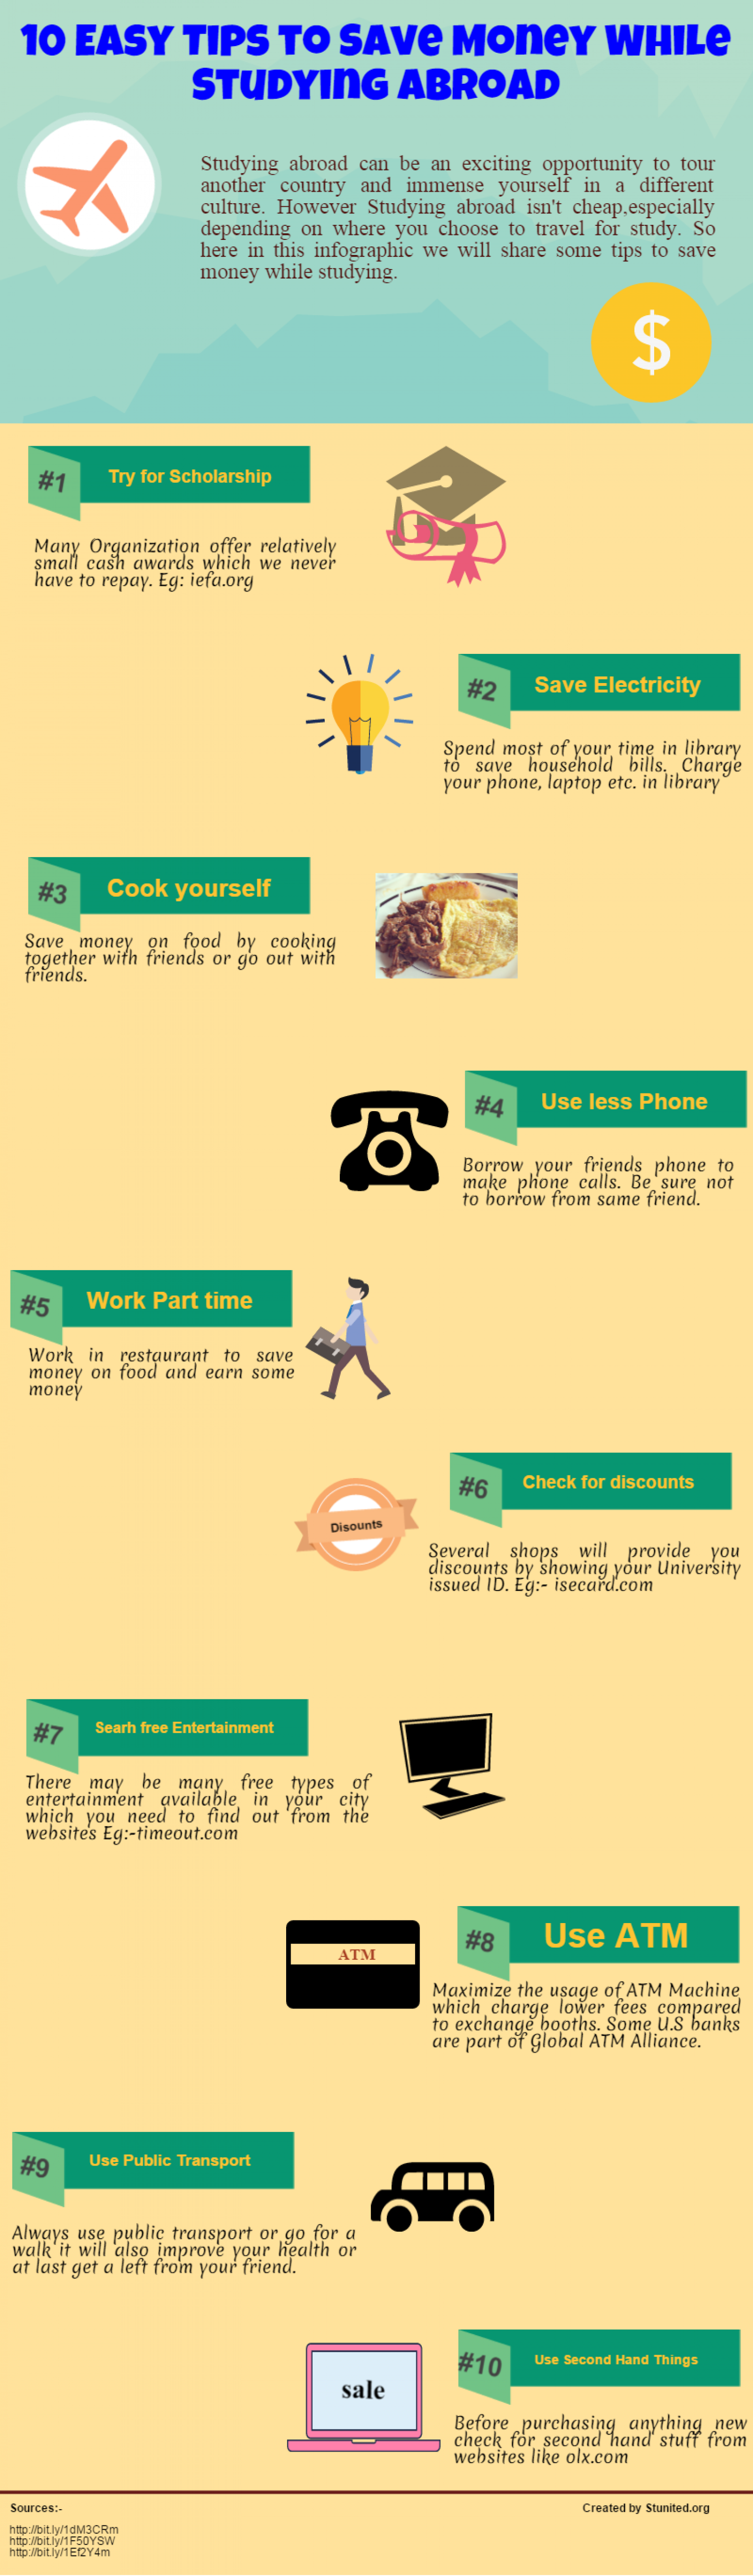 10 Easy Step to Save Money While Studying Abroad Infographic